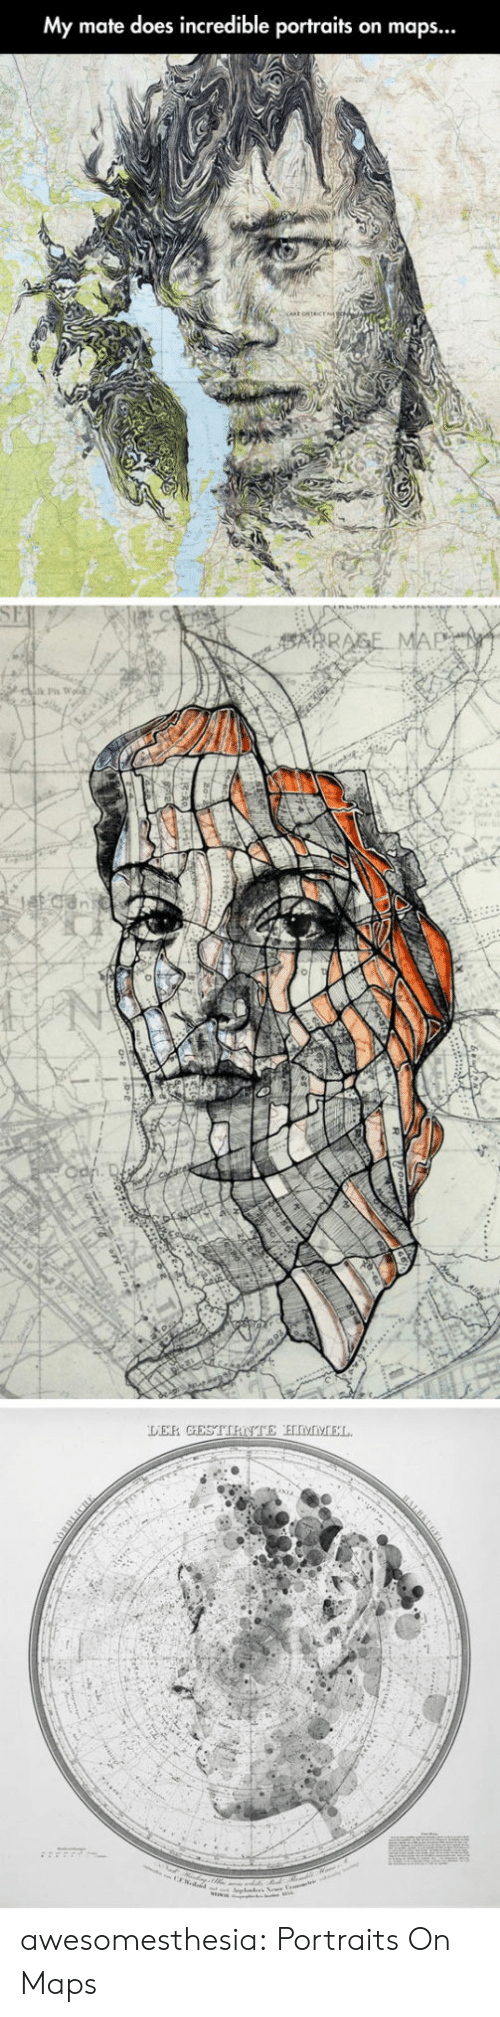 Tumblr, Blog, and Maps: My mate does incredible portraits on maps...  Jcan  DER GESTIRNTE HIMIVCEL.  wded awesomesthesia:  Portraits On Maps